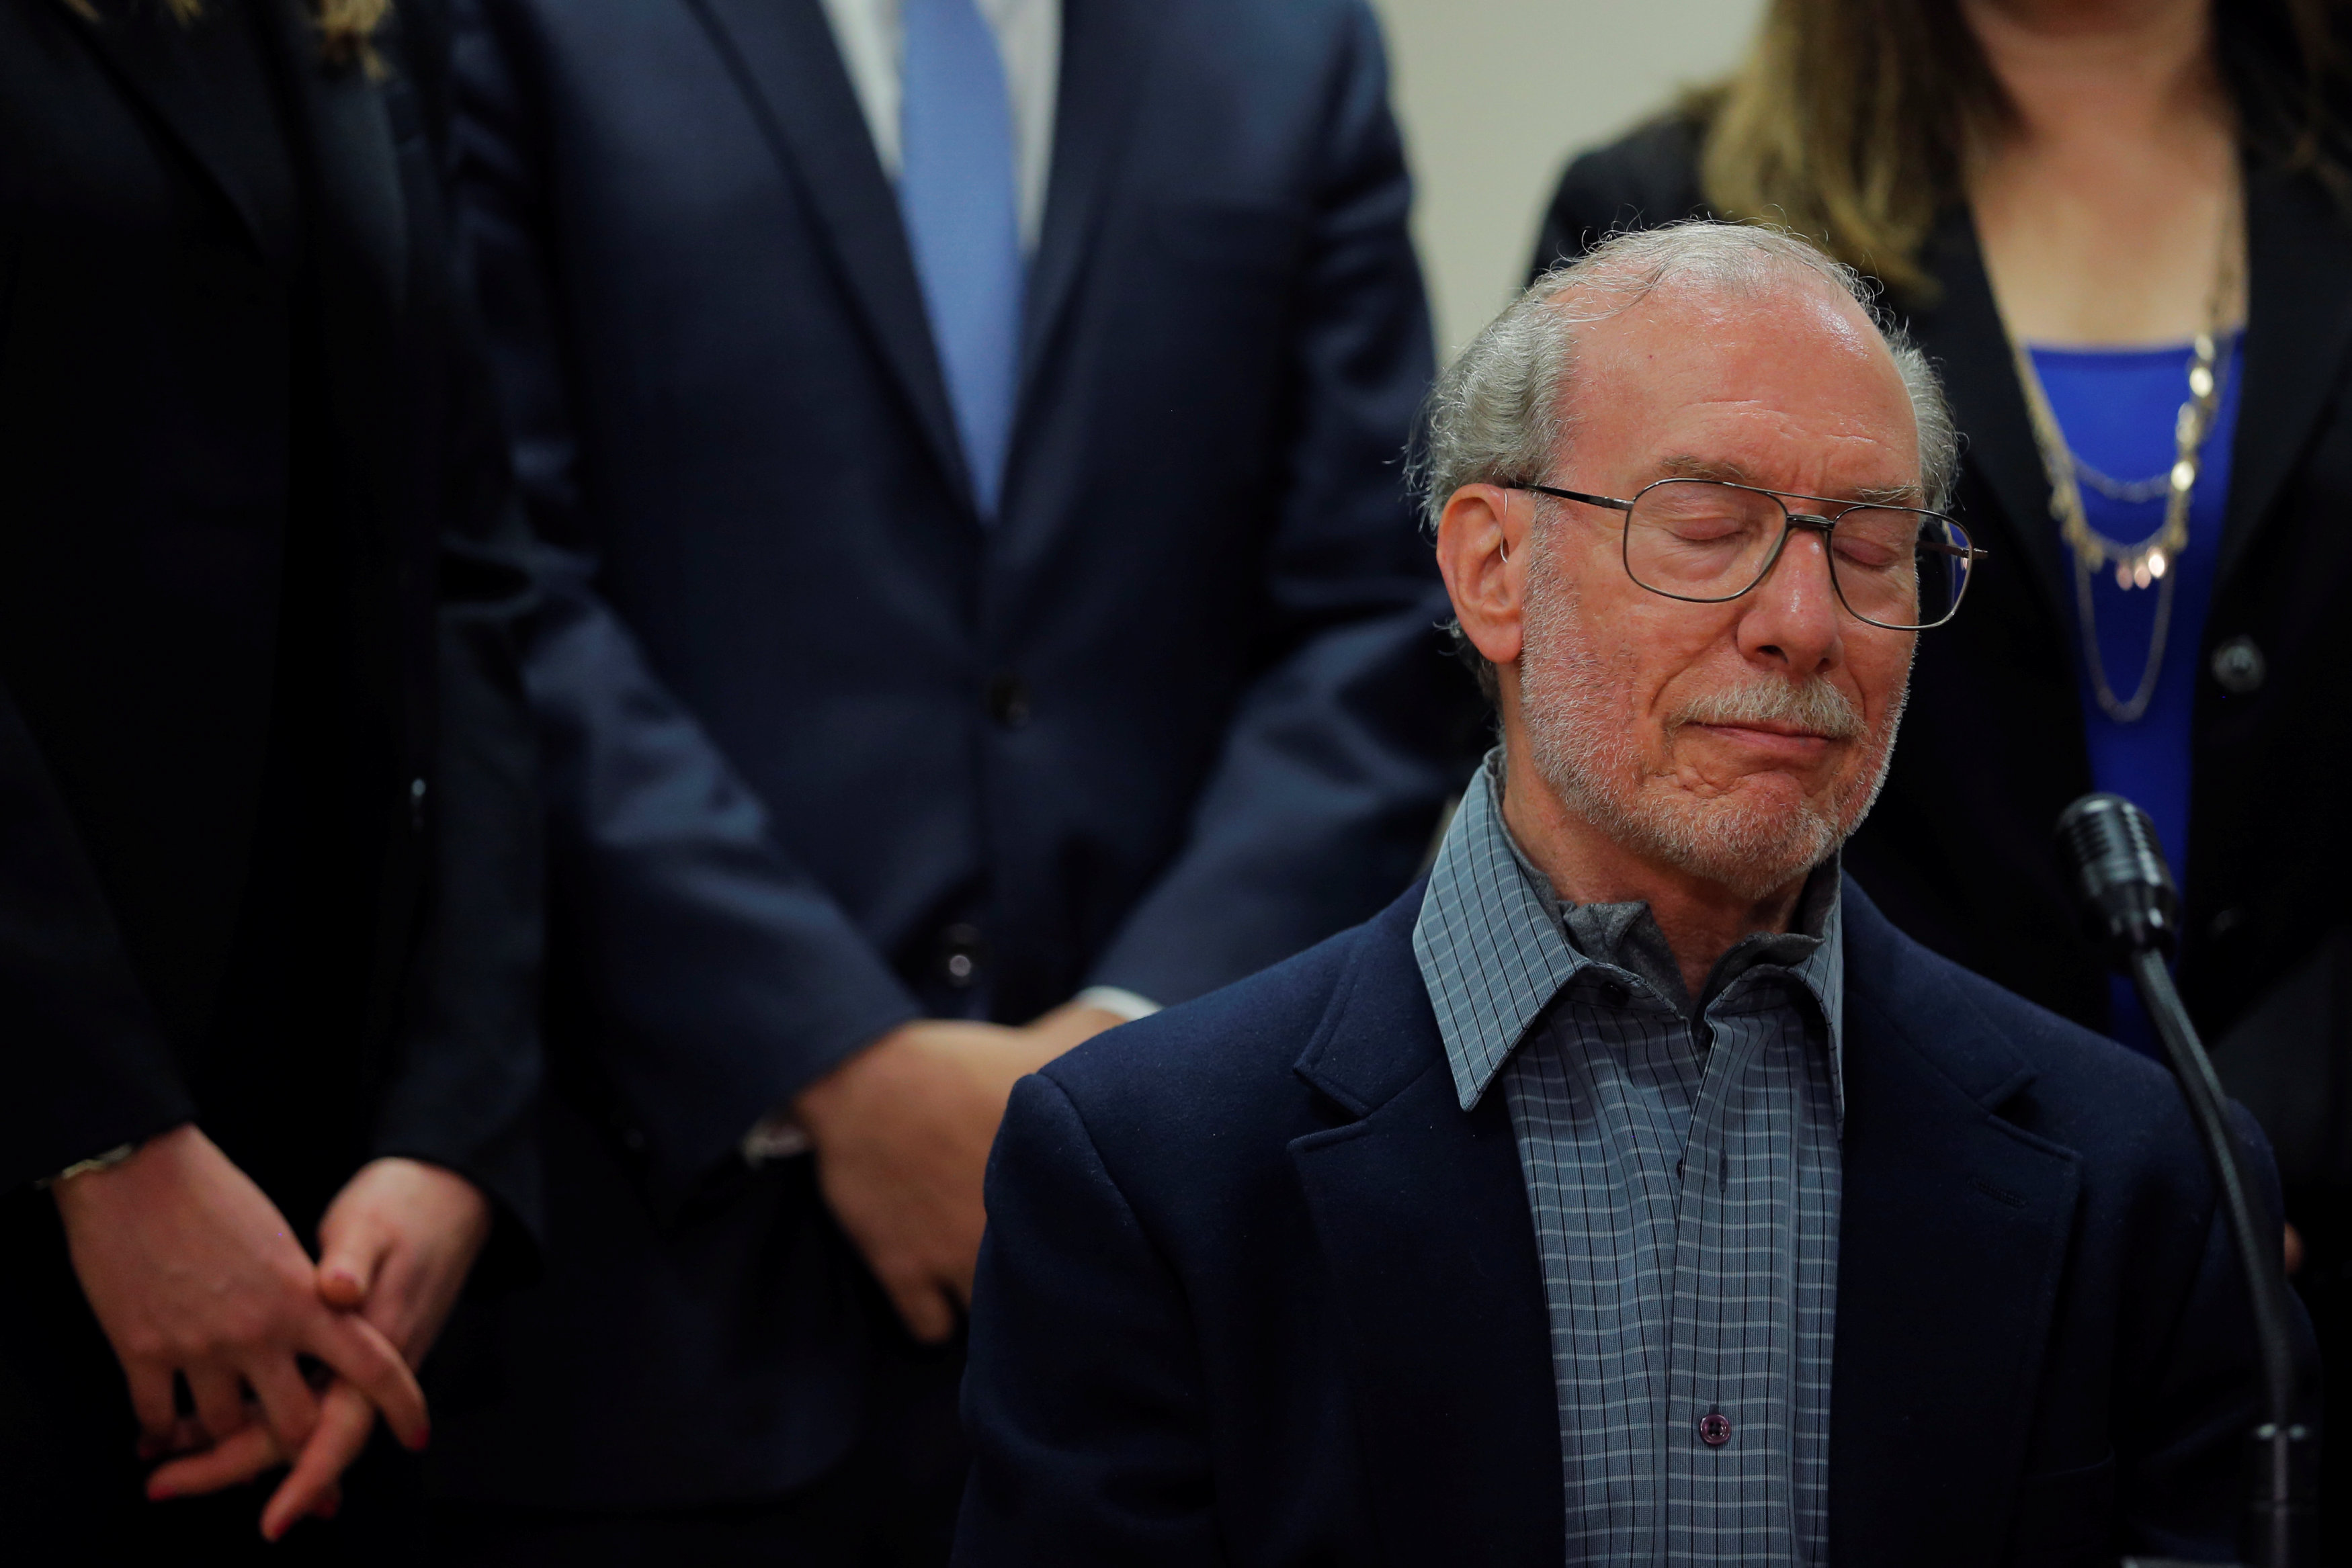 Stanley Patz, father of 1979 murder victim 6-year-old Etan Patz, at Manhattan State Supreme Court following the sentencing of Pedro Hernandez, in New York City on April 18, 2017. (REUTERS/Lucas Jackson)